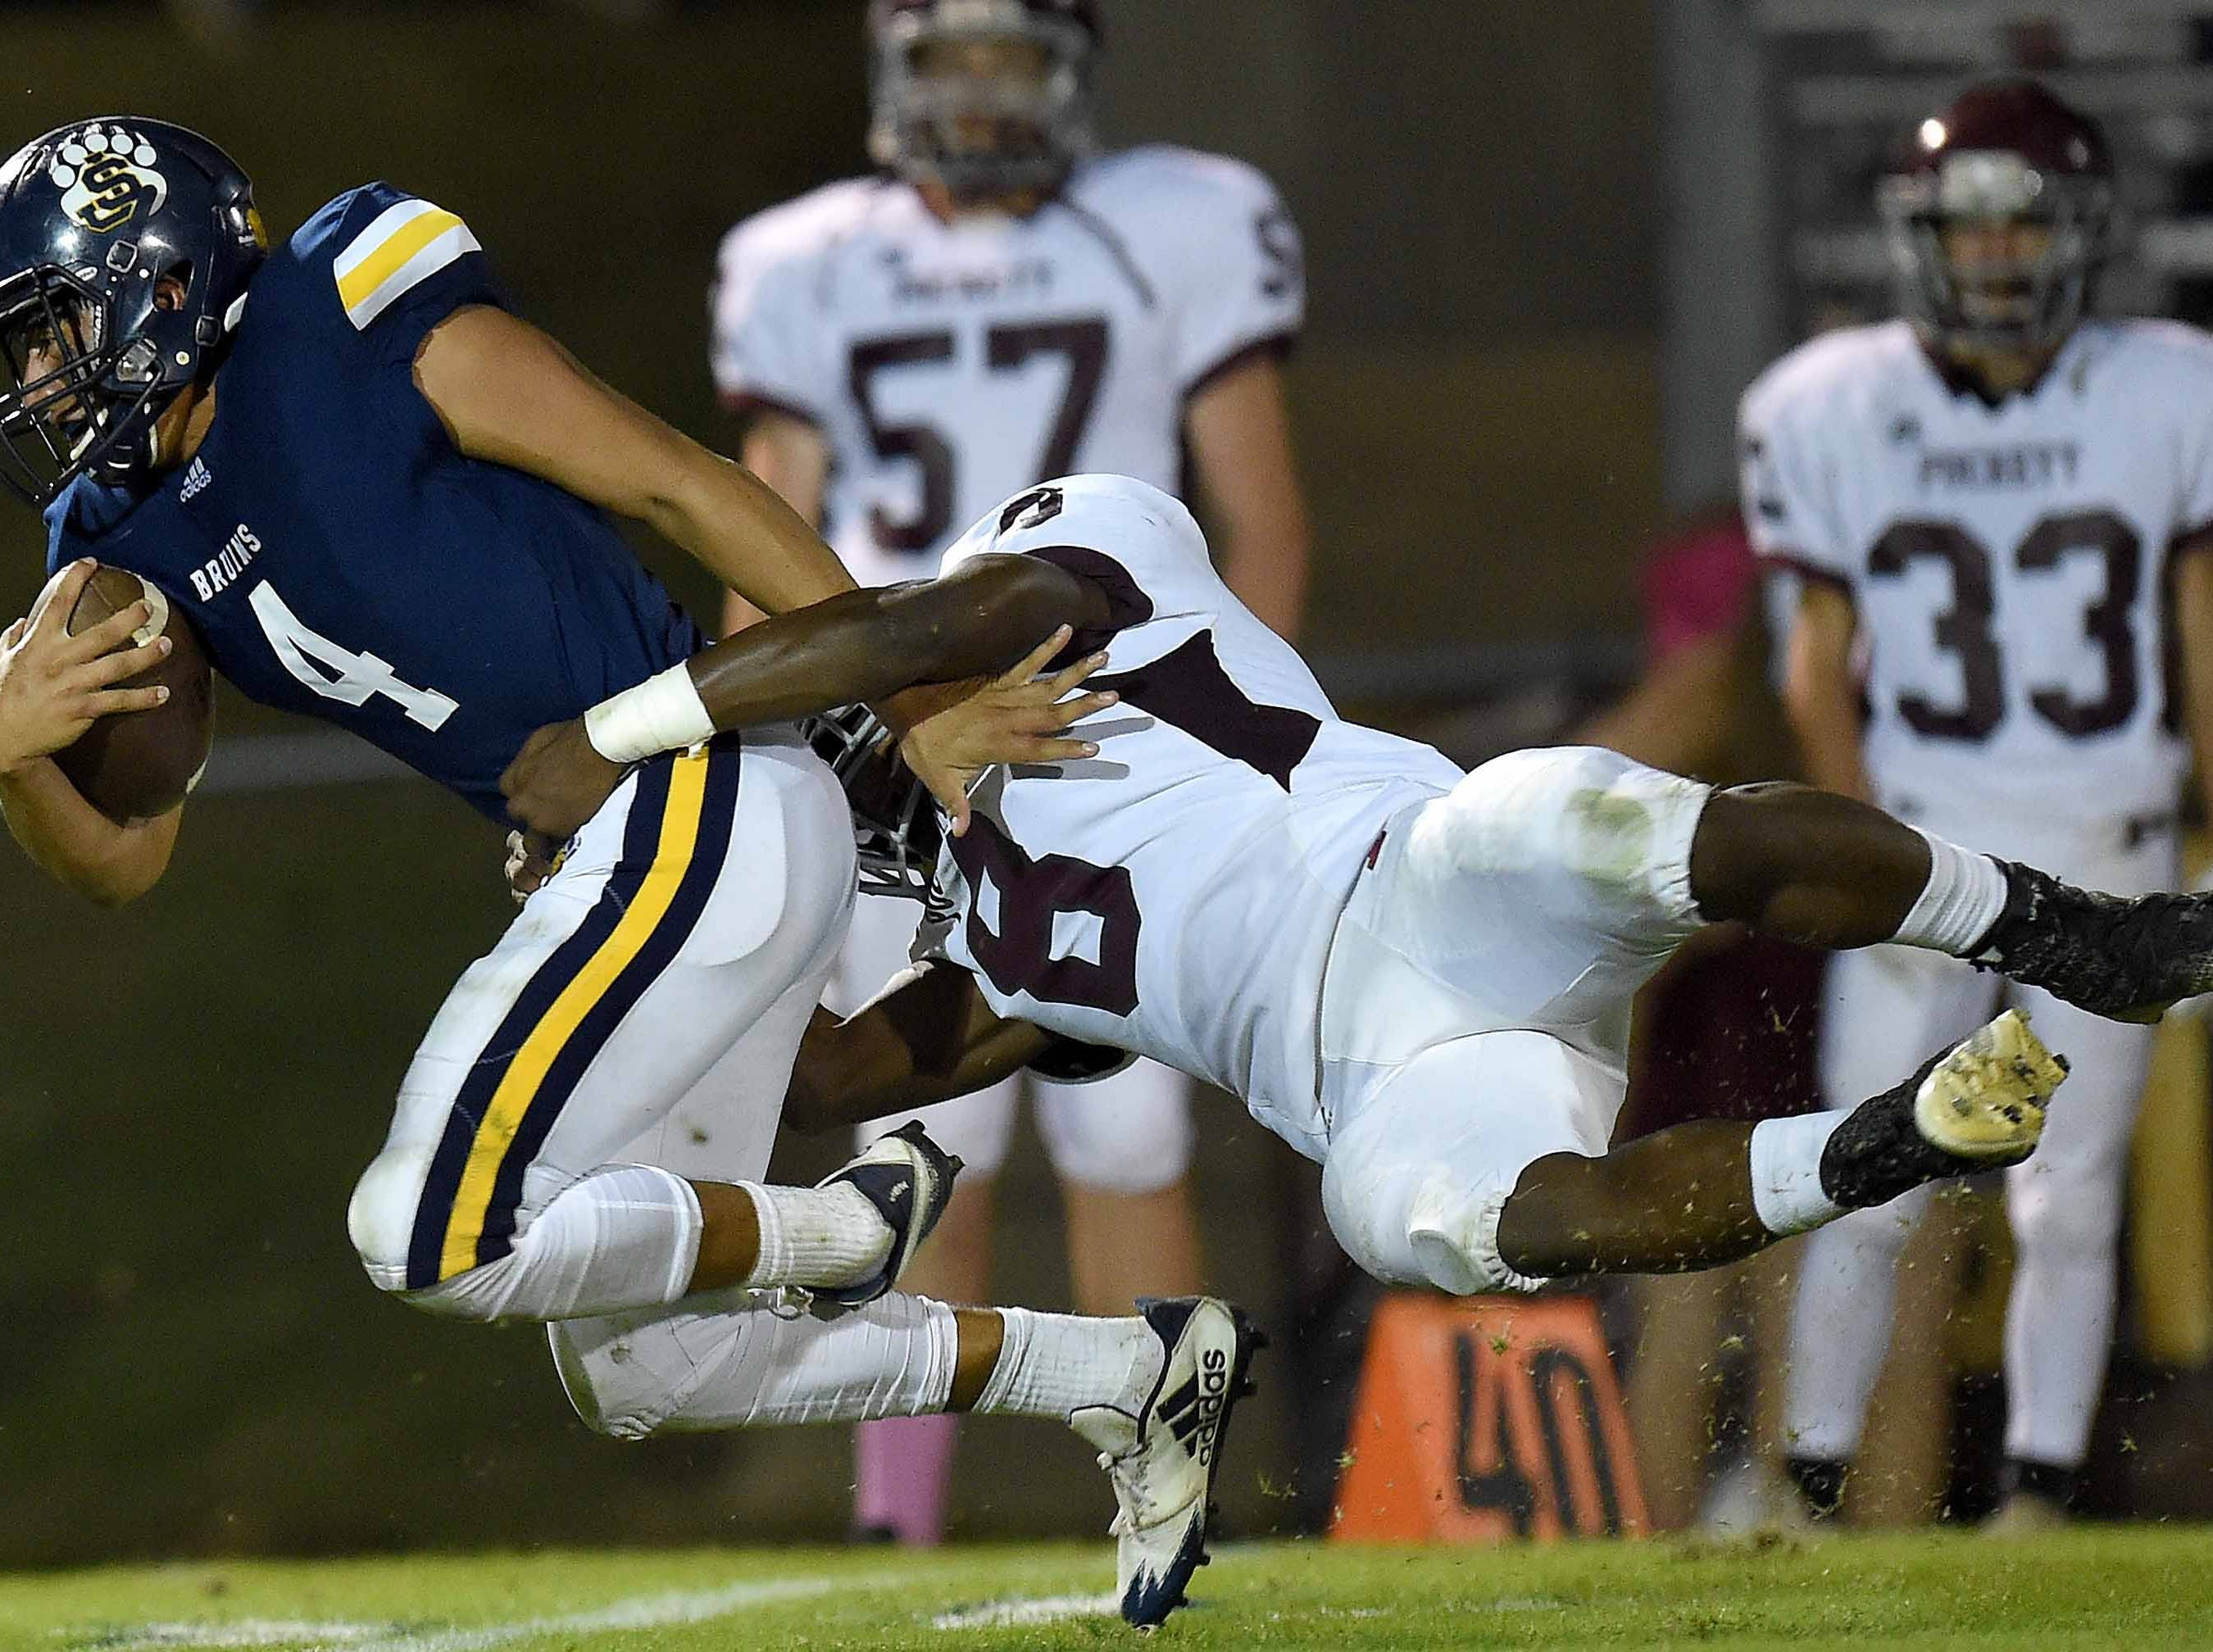 St. Joseph's Stephen Wolf (4) is tackled by Puckett's Omar Easterling (8) on Friday, October 19, 2018, at St. Joseph Catholic School in Madison, Miss.